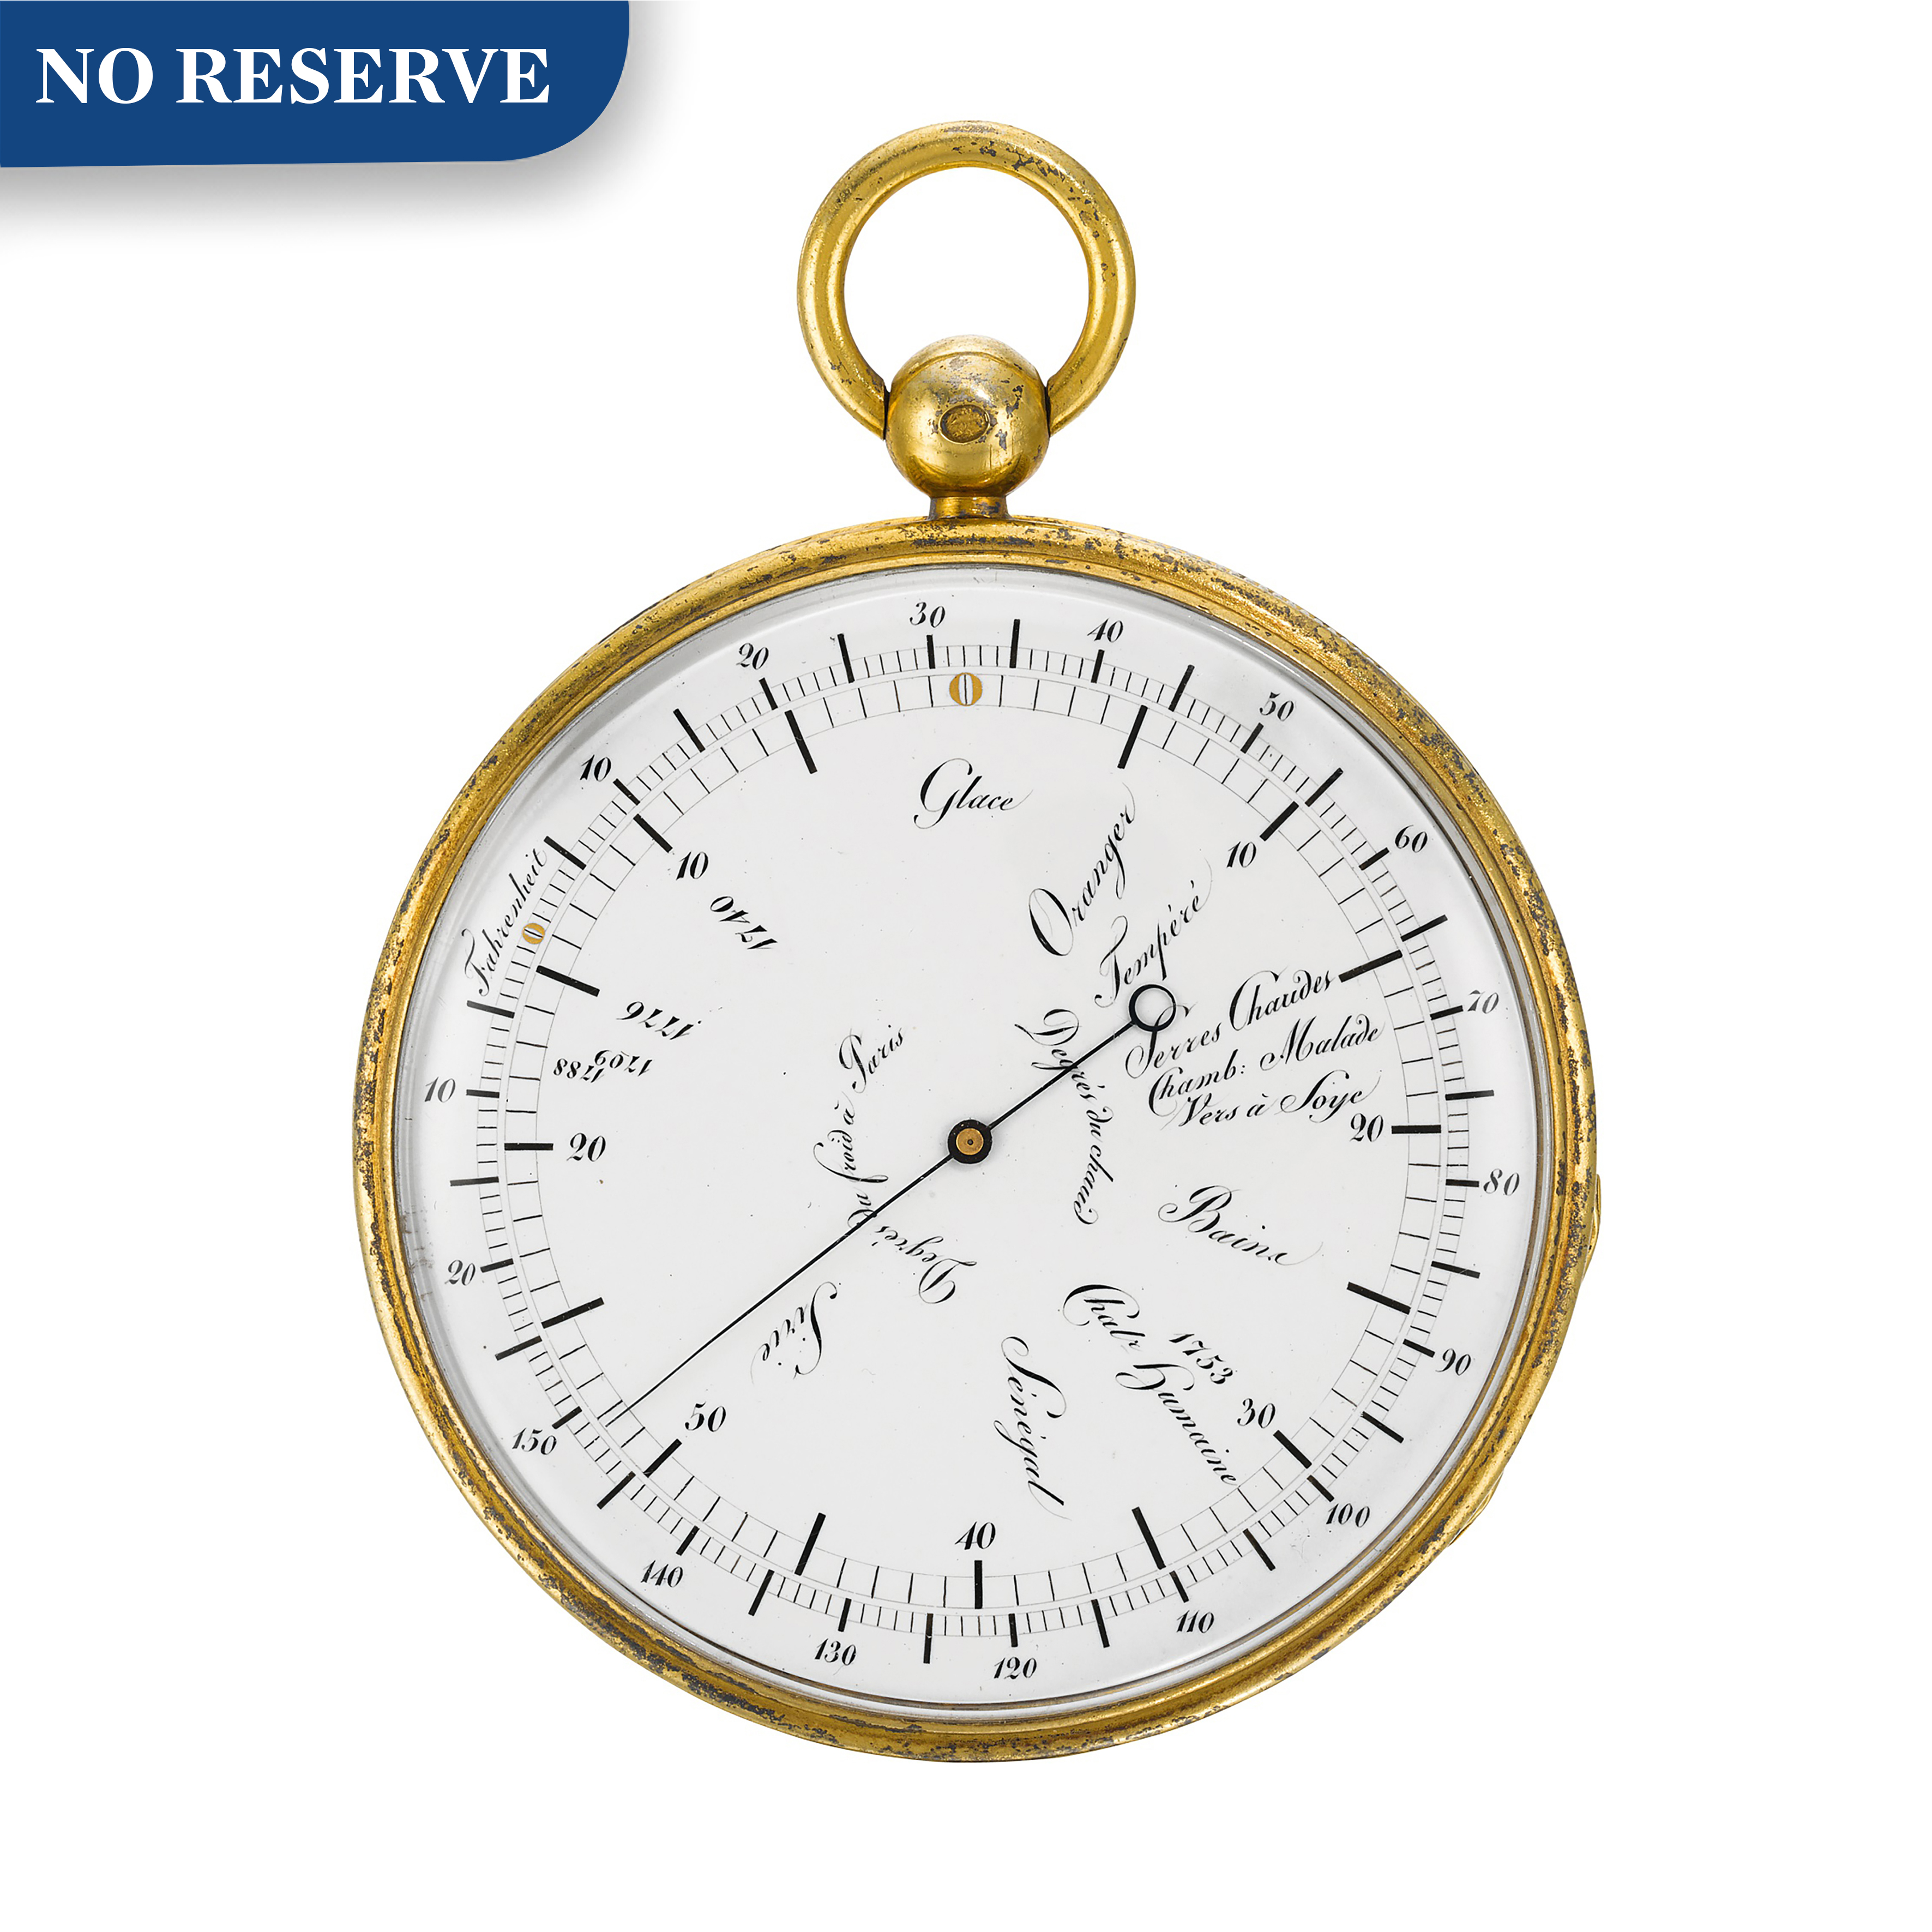 View full screen - View 1 of Lot 60. BREGUET   [寶璣]    A SILVER-GILT POCKET THERMOMETER WITH RÉAUMUR AND FAHRENHEIT SCALES  NO. 101 PRESENTED AS A GIFT TO MONSIEUR CLÉMENT 18 DECEMBER 1821   [鎏金銀袖珍溫度計備列氏及華氏溫標,編號101,1821年12月18日贈出].